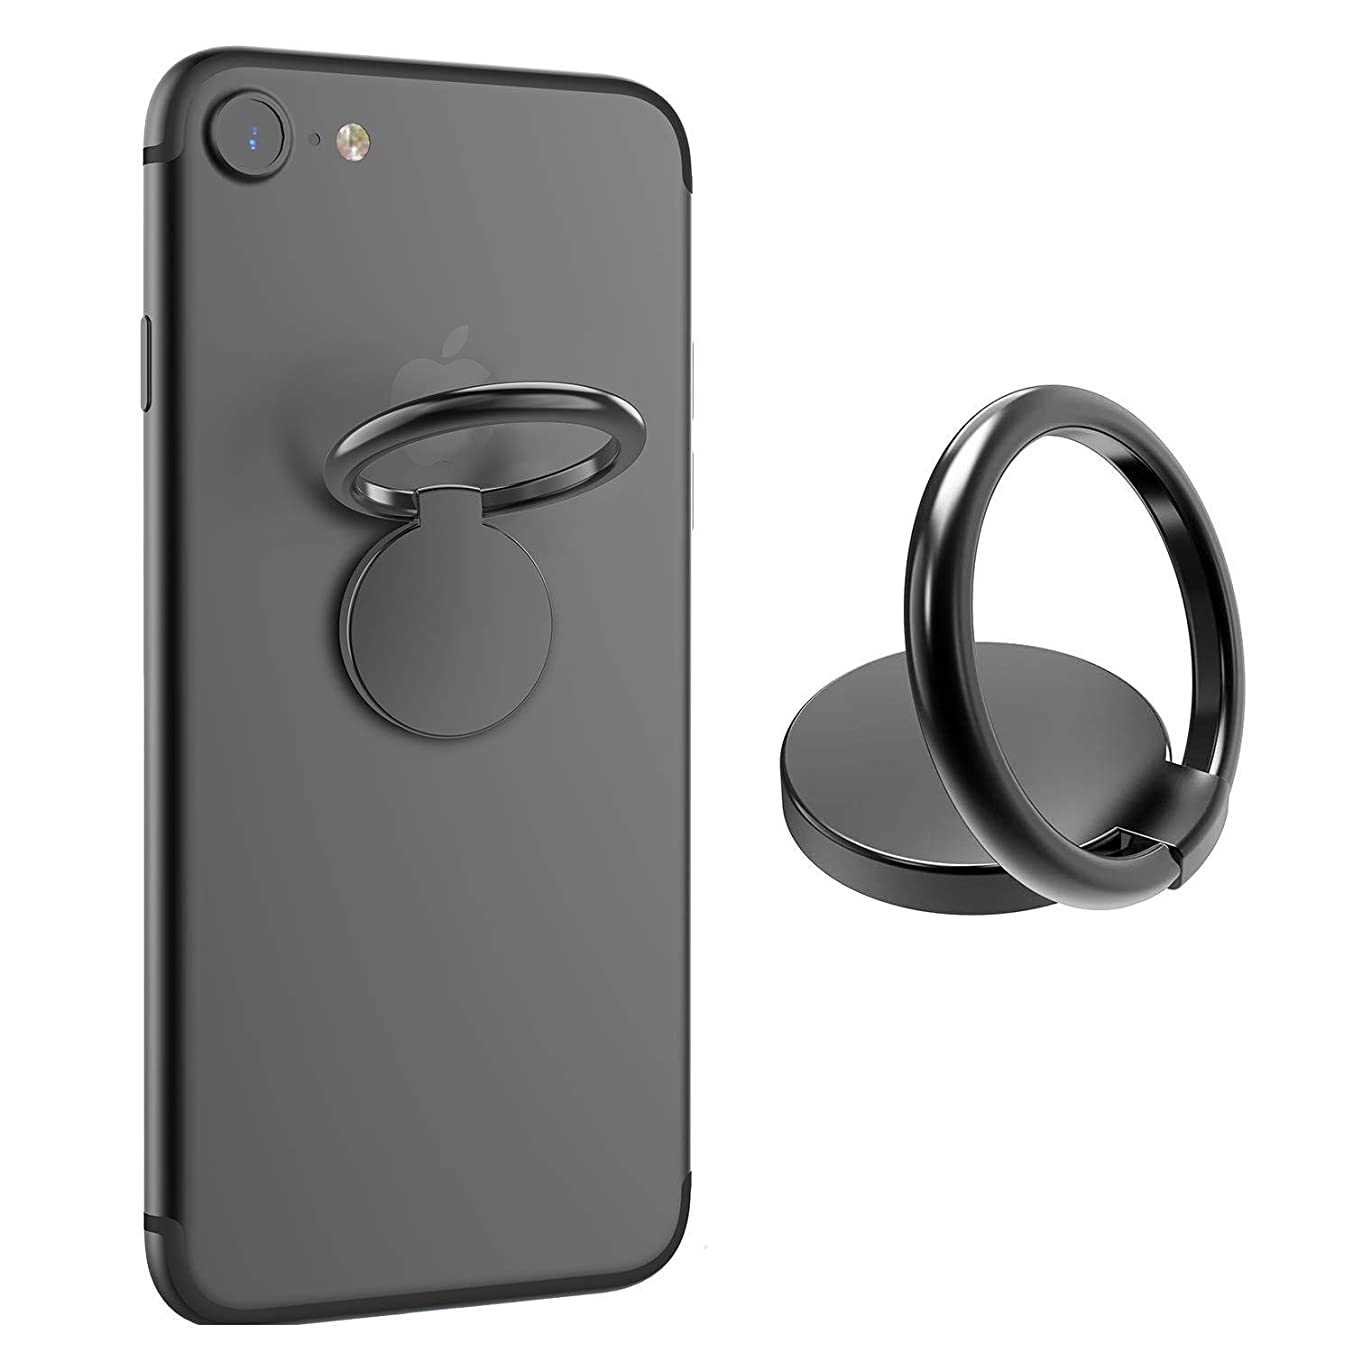 ICHECKEY Smart Phone Ring Holder 360 Adjustable Ring Stand Grip Mount Kickstand for iPhone X/8/7/7 Plus, Galaxy S8/S8 Plus and Almost All Cases/Phones (Gunmetal)